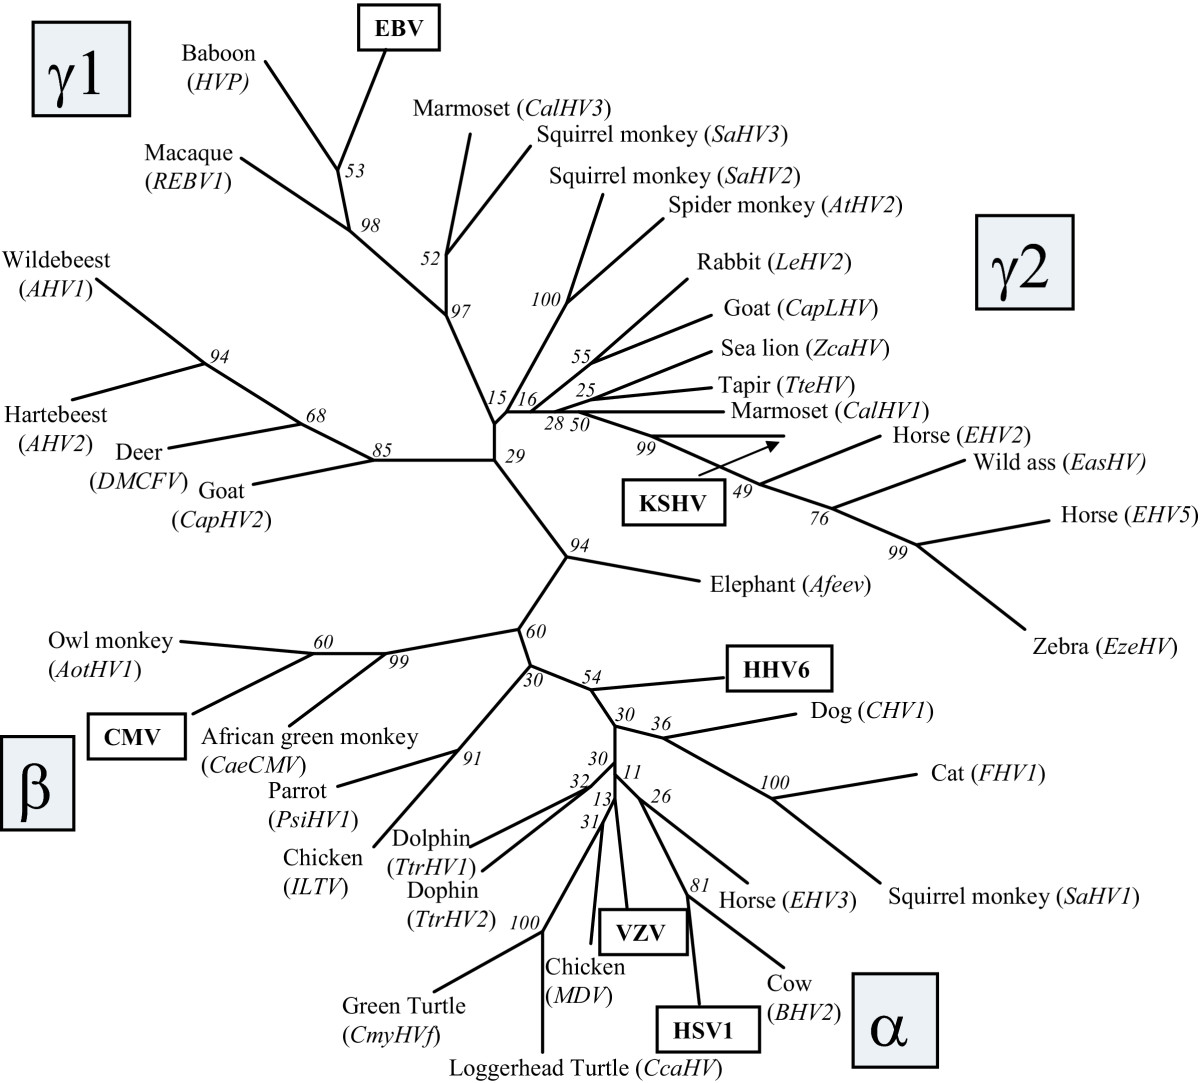 http://static-content.springer.com/image/art%3A10.1186%2F1743-422X-2-20/MediaObjects/12985_2005_Article_35_Fig9_HTML.jpg